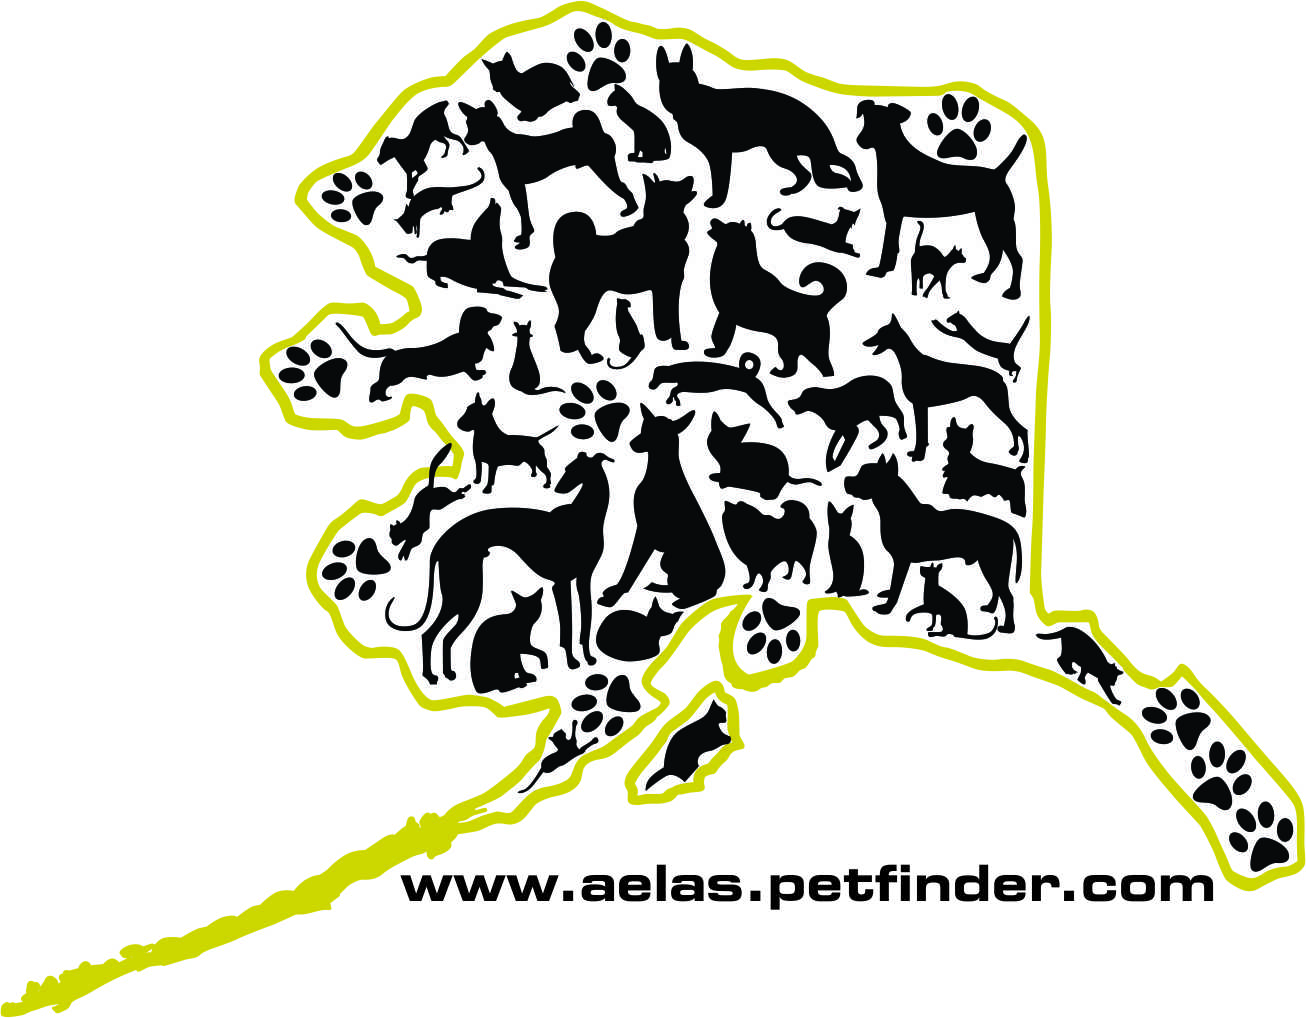 Alaskas Extended Life Animal Sanctuary